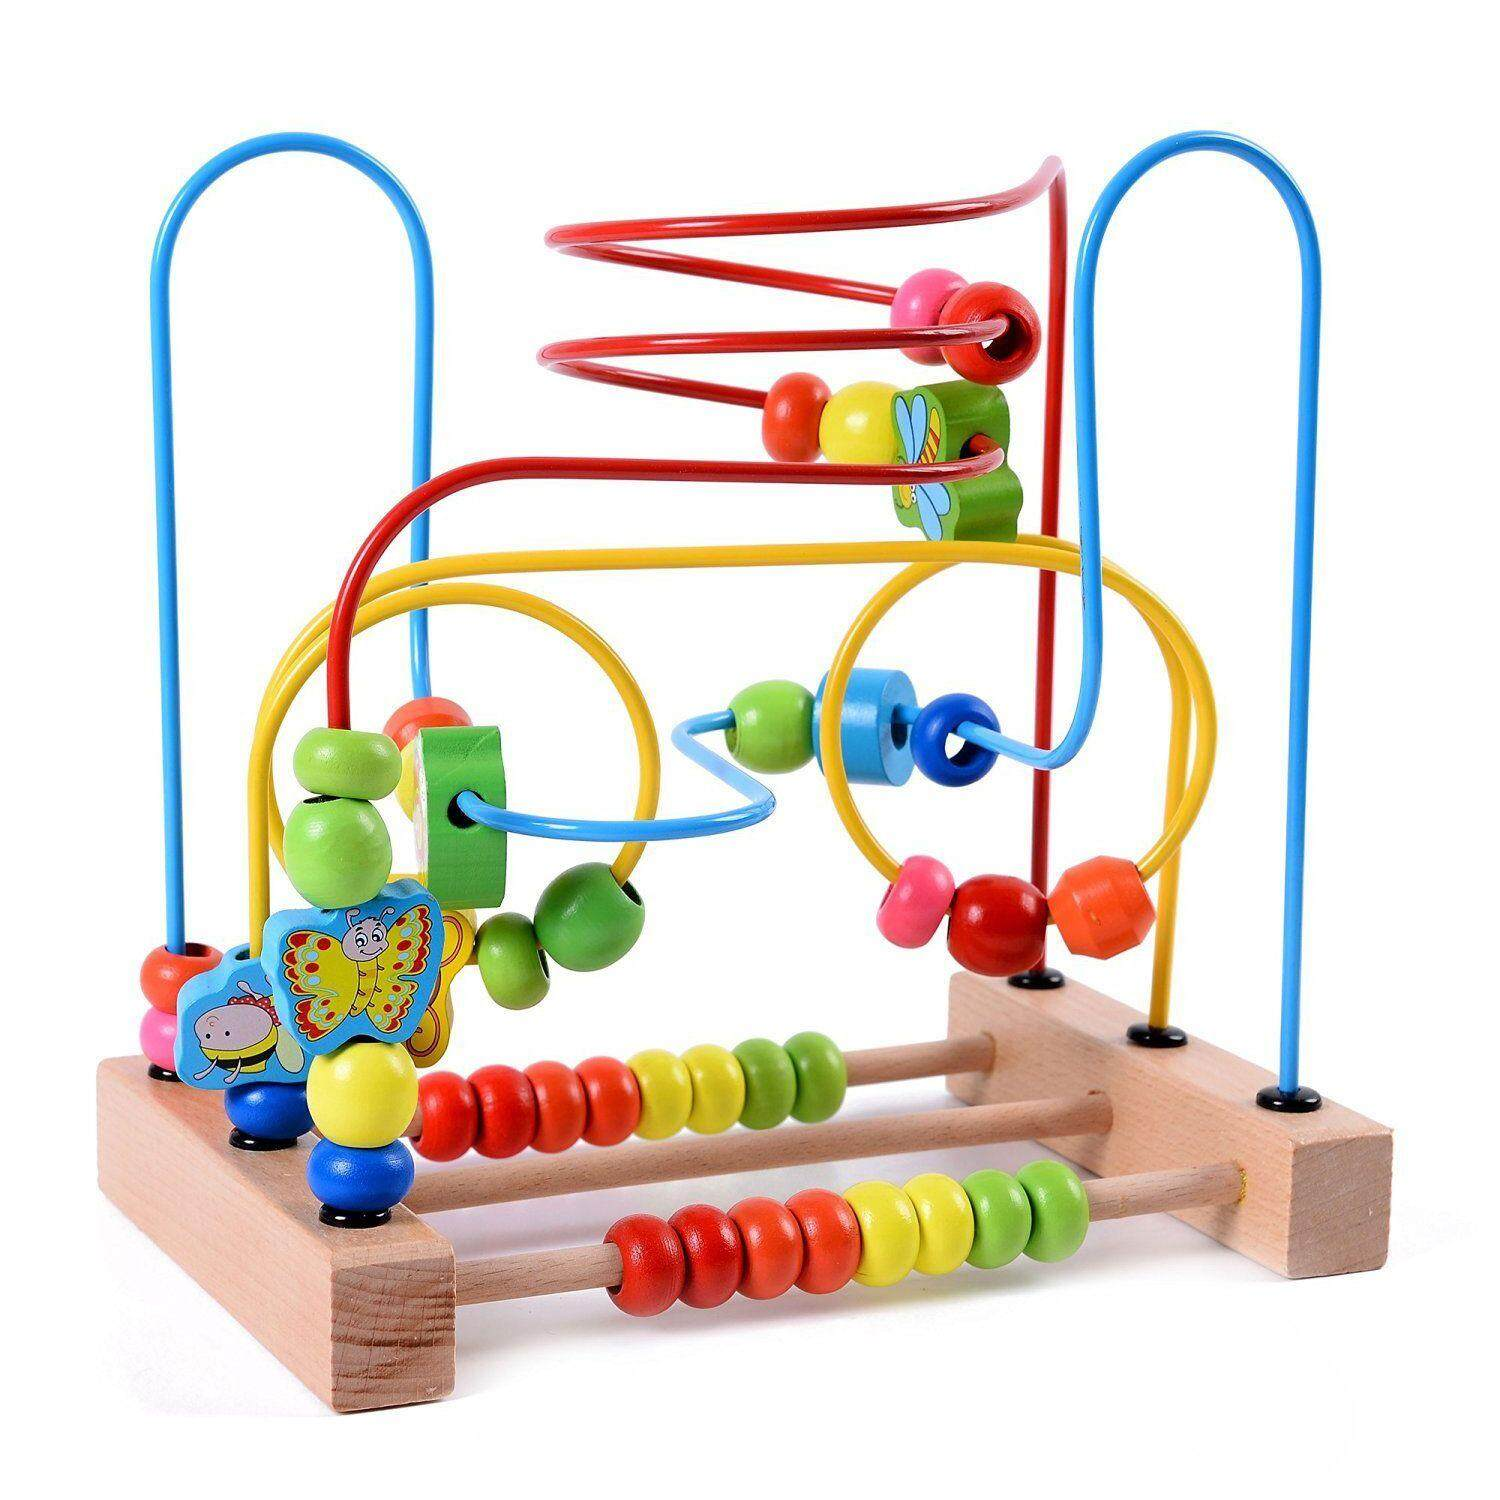 Mwz Wooden Baby Toddler Toys Circle First Bead Maze For Boys Girls By Rainning.